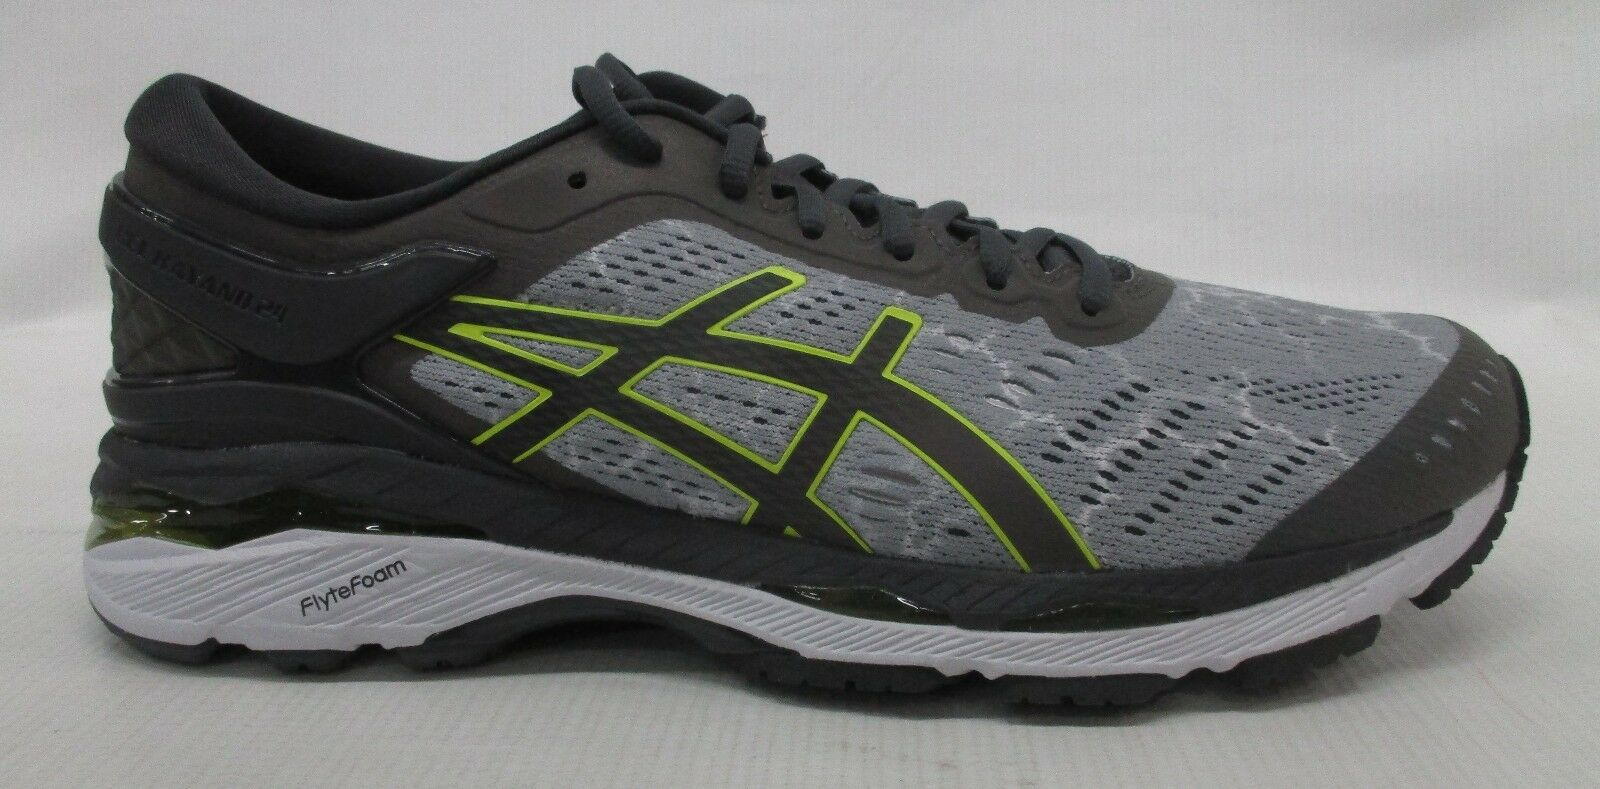 Asics Mens Gel Kayano 24 Lite-Show Shoe T8A4N 9695 Mid Grey/Dark Grey/Yellow 8